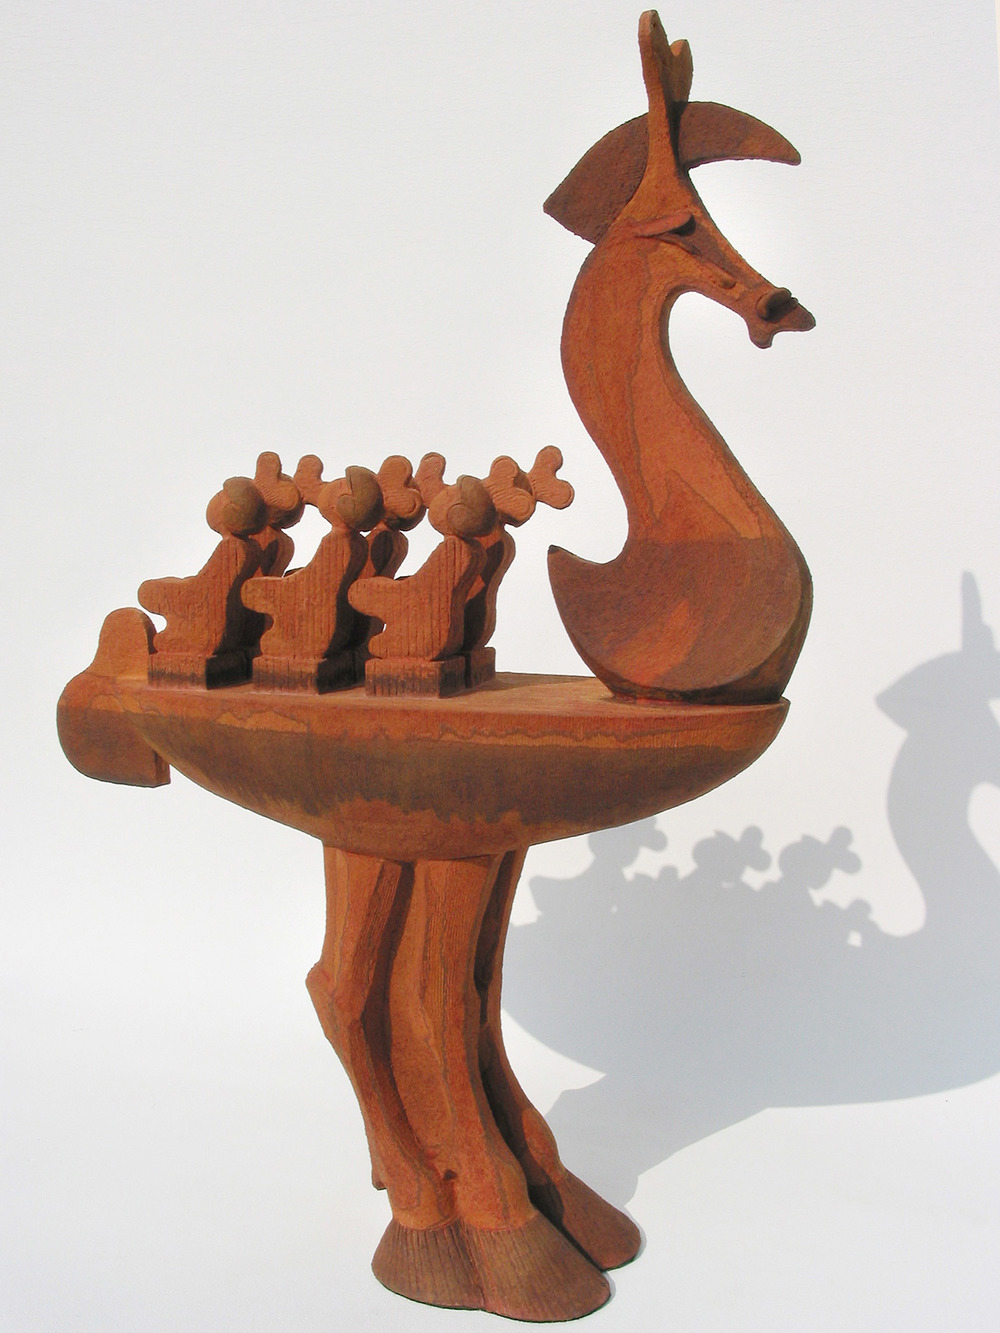 Seahorse   ©  79 cm high x 54 cm wide  Unique  A vessel with a horse-head prow and a horse-legged stand; on board, six rowers of Chinese origin.  Understated in this eclectic mix are the the horsetail rudder and the heart-shaped helmets that are disguised, wind-up toy keys.  This piece implies deception, combining the charm of a mechanical toy with the presence of an instrument of plunder. A variation on a Greek offering.